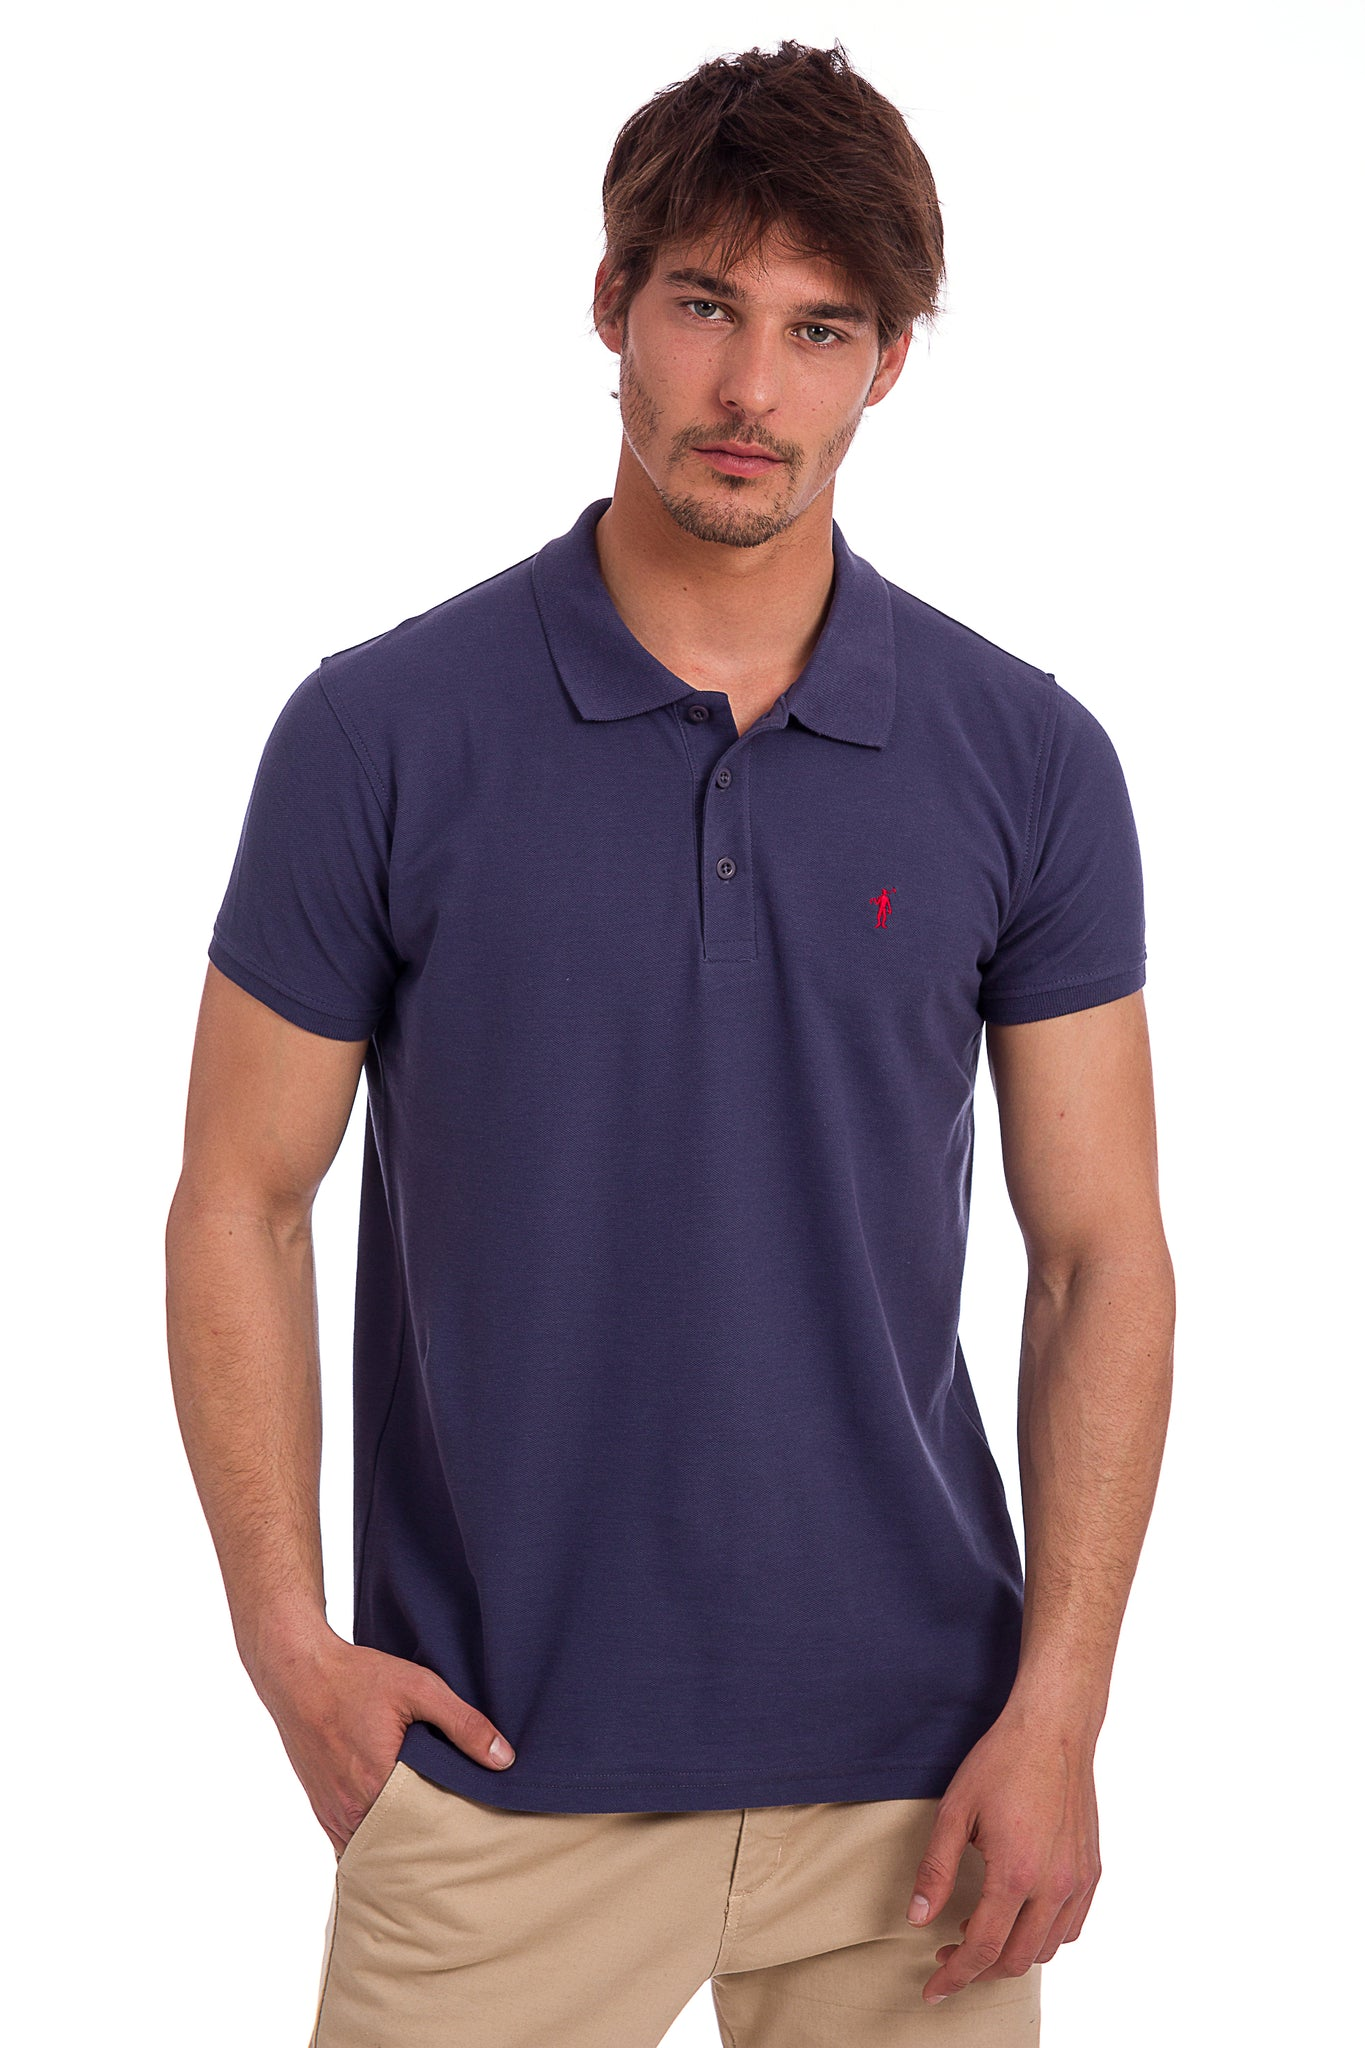 Polo azul denim con logo bordado